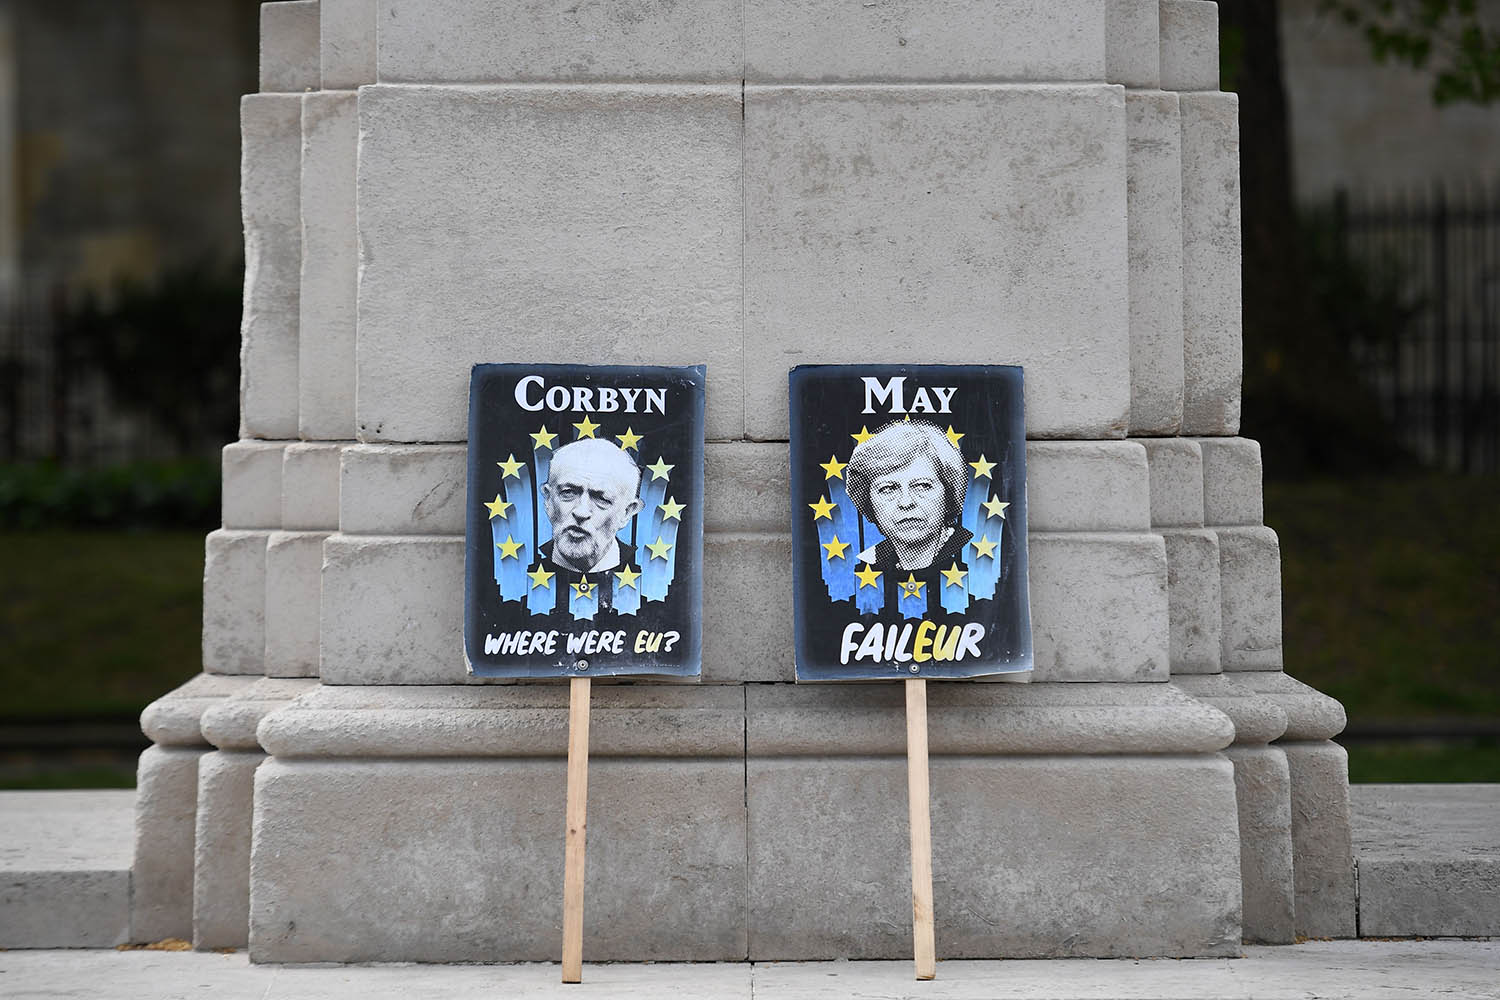 Placards featuring Britain's Labour party leader Jeremy Corbyn and Britain's then-Prime Minister Theresa May in the colours of the European Union lean against a pillar near the Houses of Parliament in London on April 25.